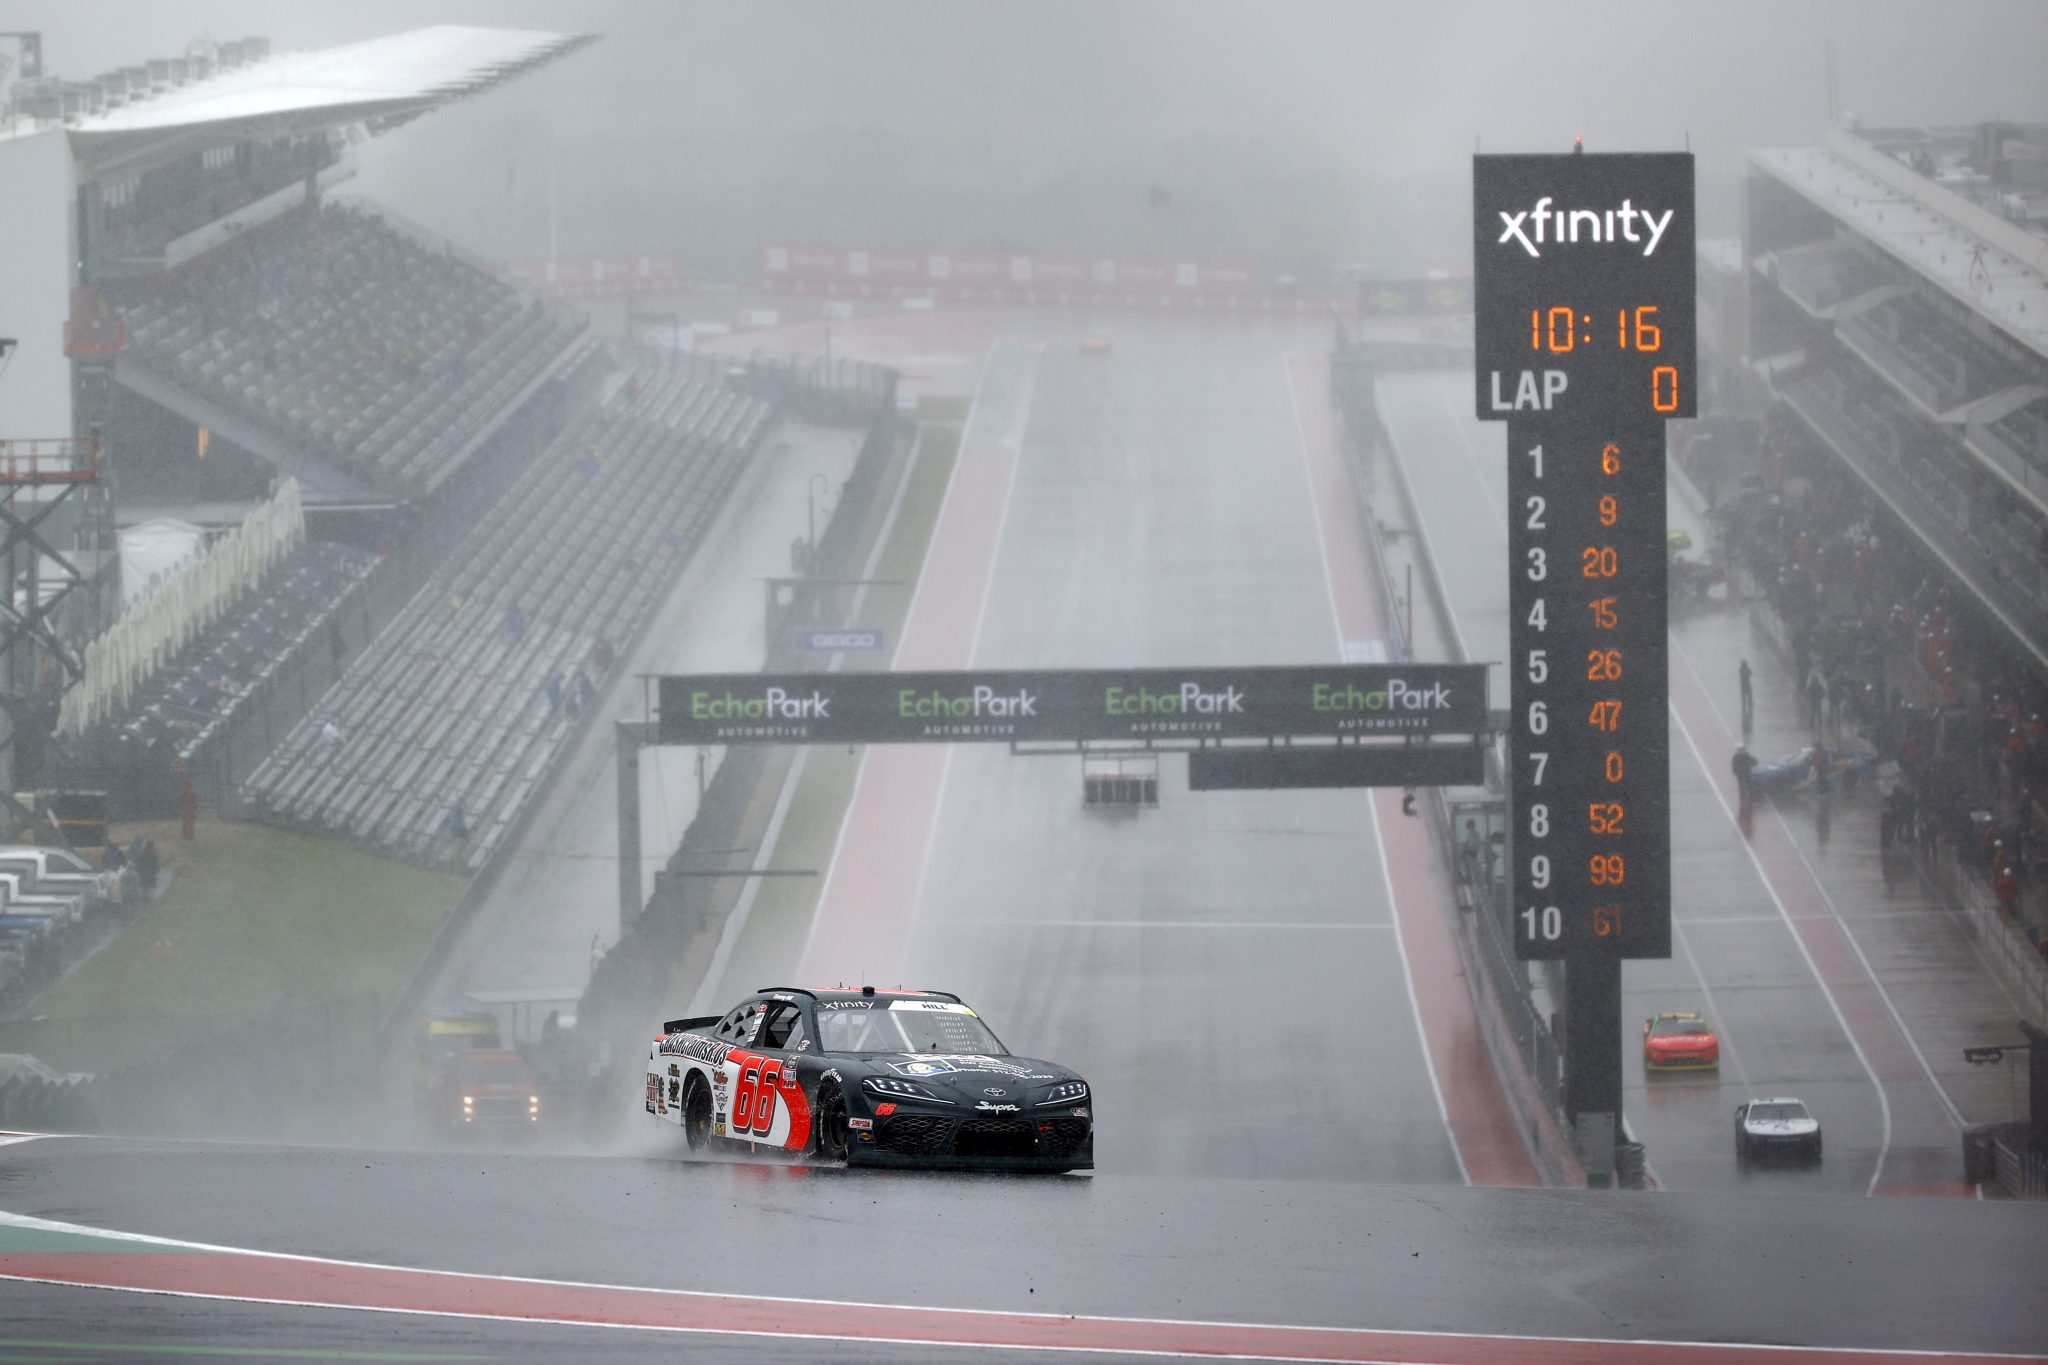 AUSTIN, TEXAS - MAY 22: Timmy Hill, driver of the #66 CrashClaimsR.US Toyota, drives during qualifying for the NASCAR Xfinity Series Pit Boss 250 at Circuit of The Americas on May 22, 2021 in Austin, Texas. (Photo by Jared C. Tilton/Getty Images) | Getty Images